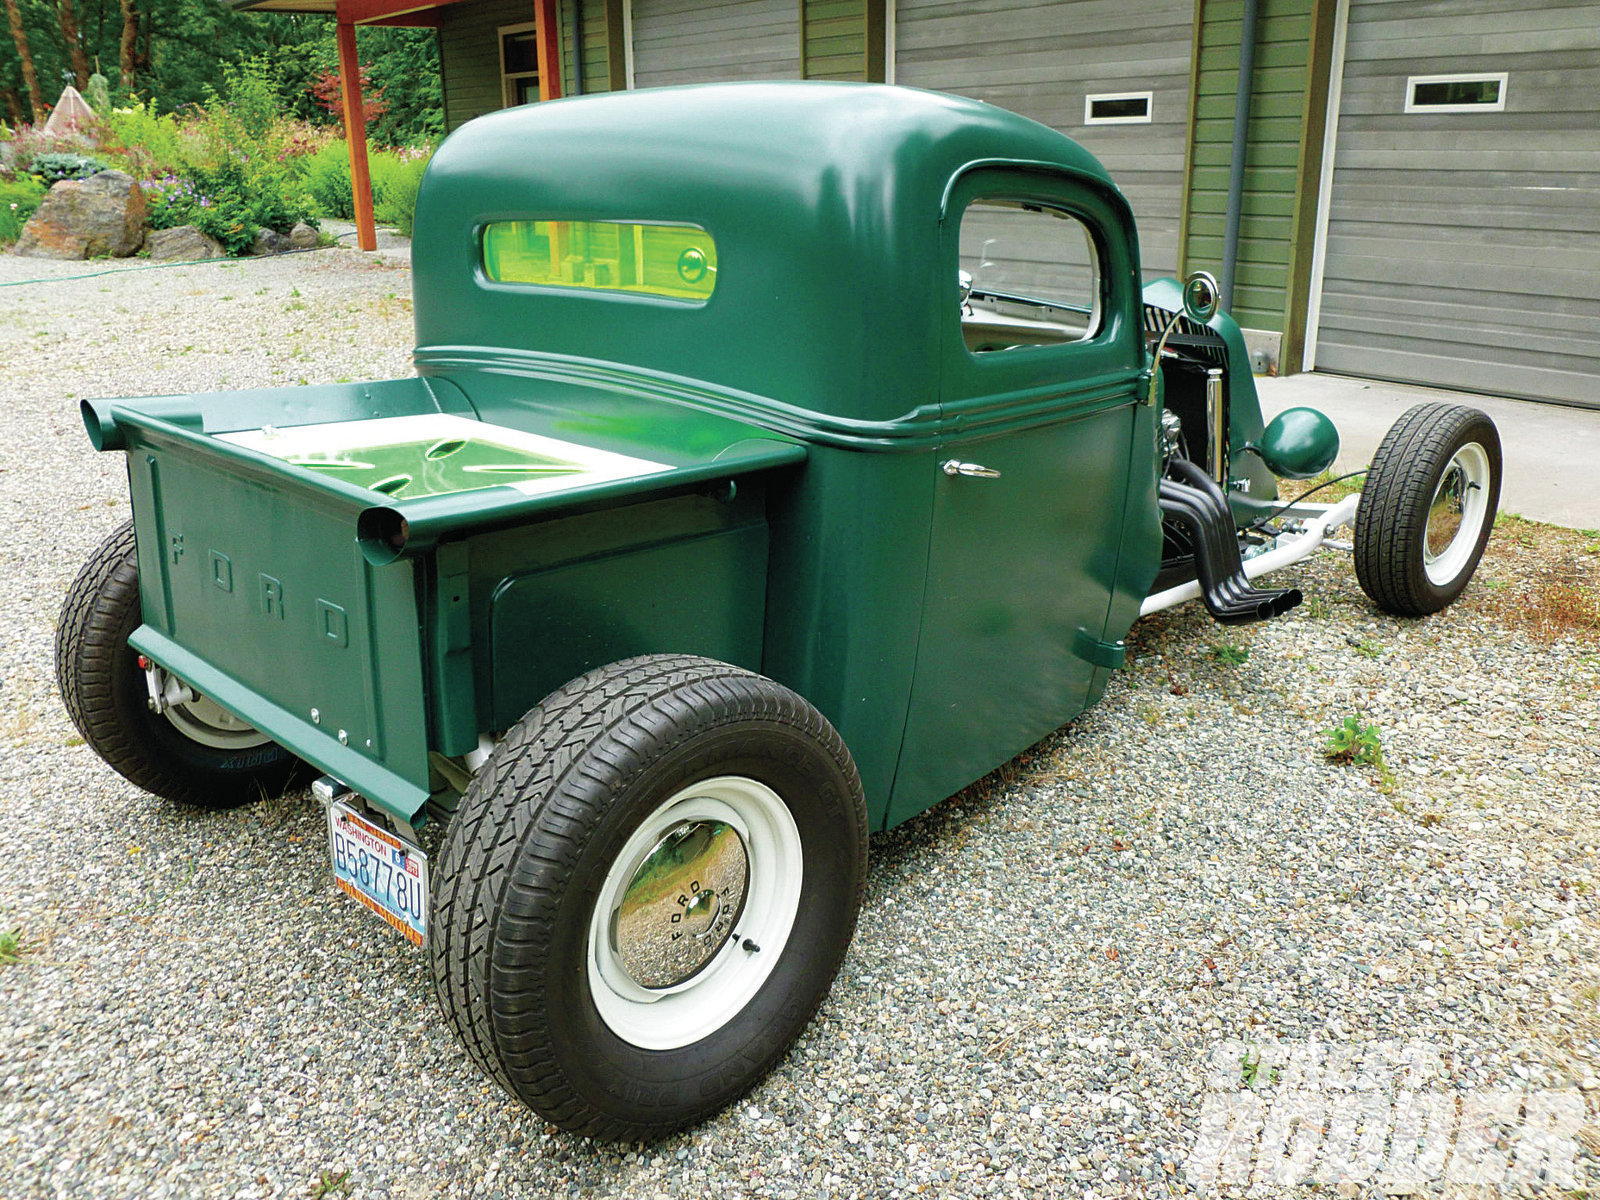 The bed sides are sectioned pieces from a '40 Ford while the tailgate is from a '56 Ford.